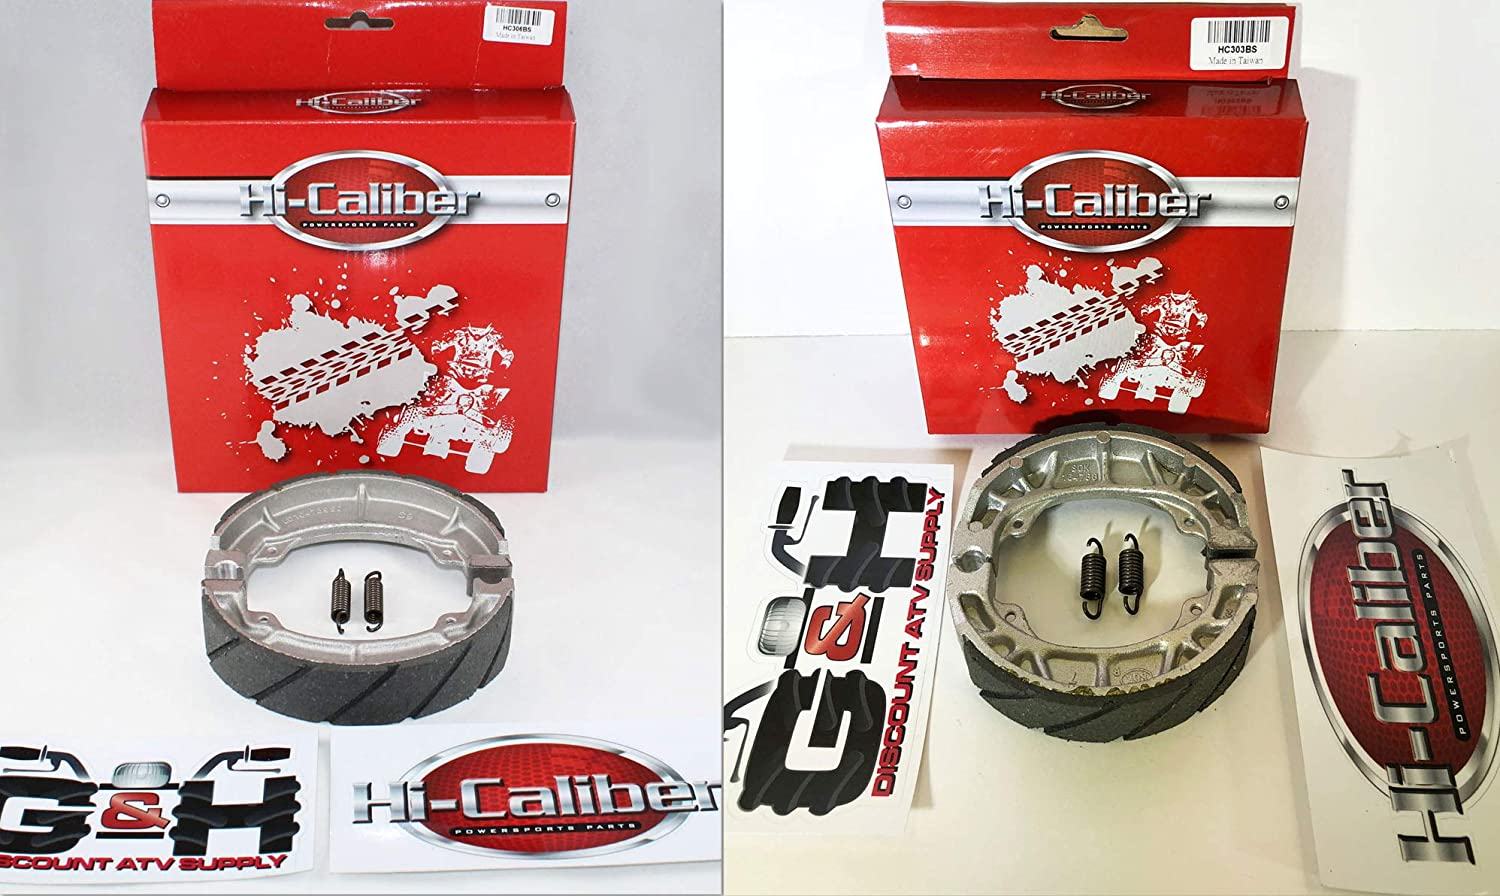 Springs Honda Atc 200M 200S 200E 200ES Big Red WATER GROOVED Rear Brake Shoes